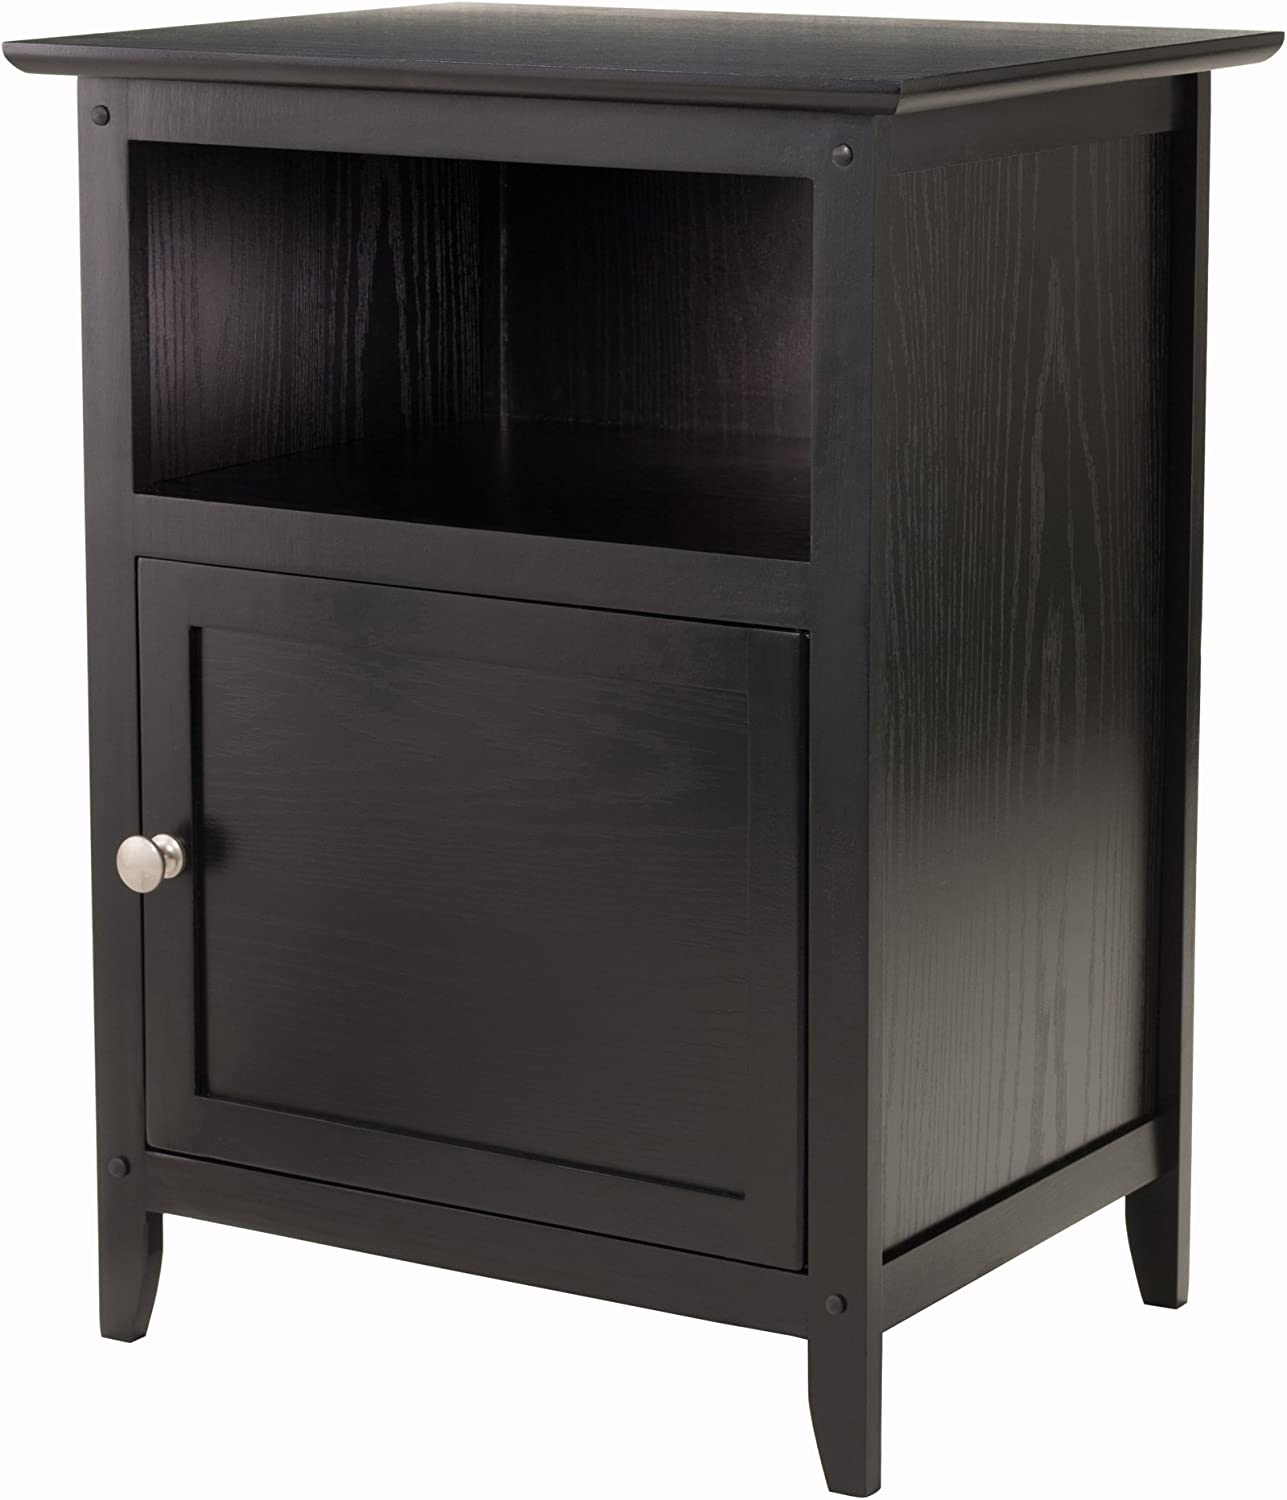 Winsome Wood End Table Night Stand with Door and Shelf, Black